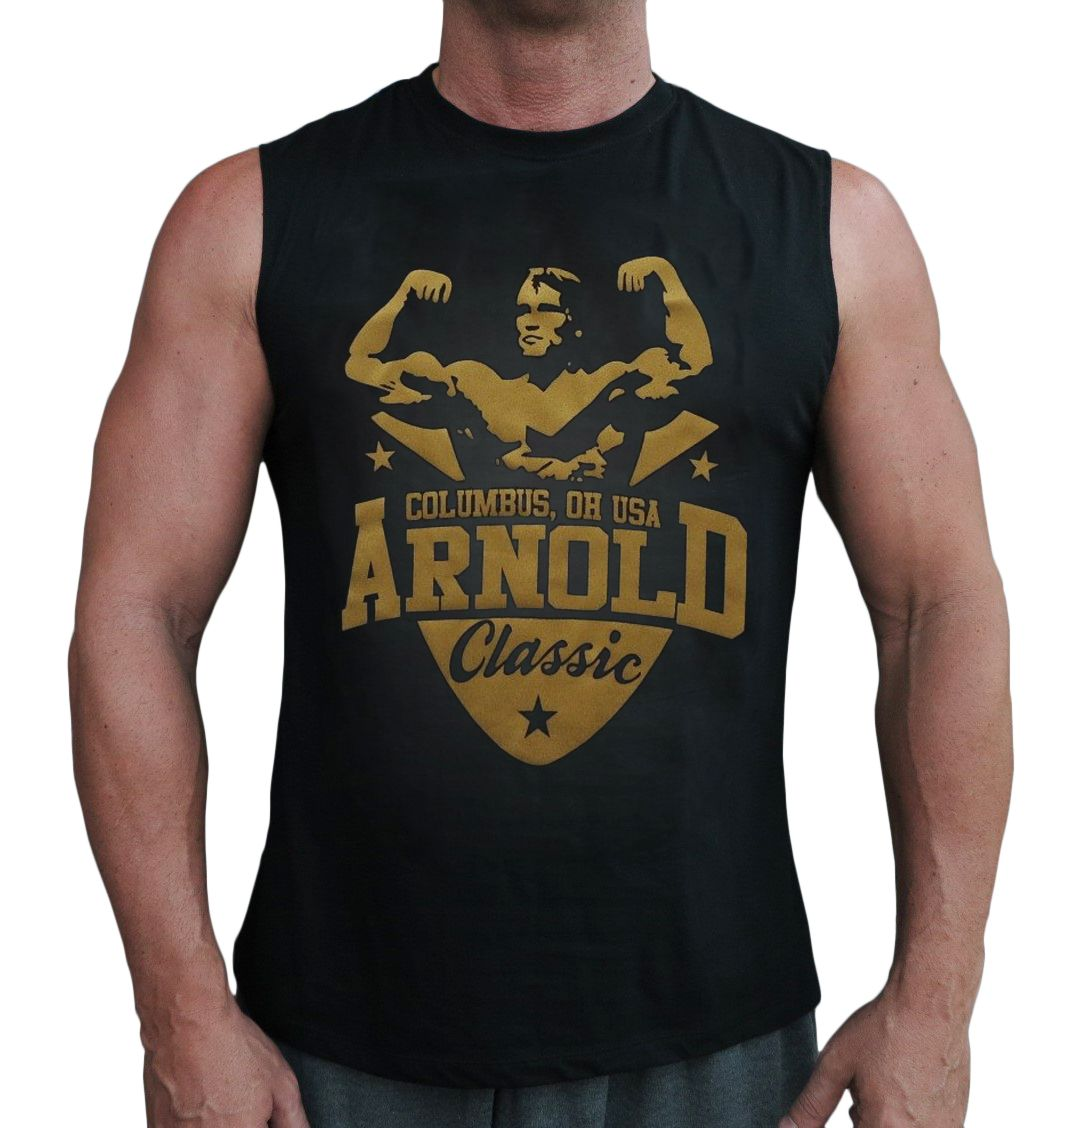 21091f42af0f3 Muscleman Gear Arnold Classic Men s Stringer Tank Tops. Available On Amazon  Price   15.95